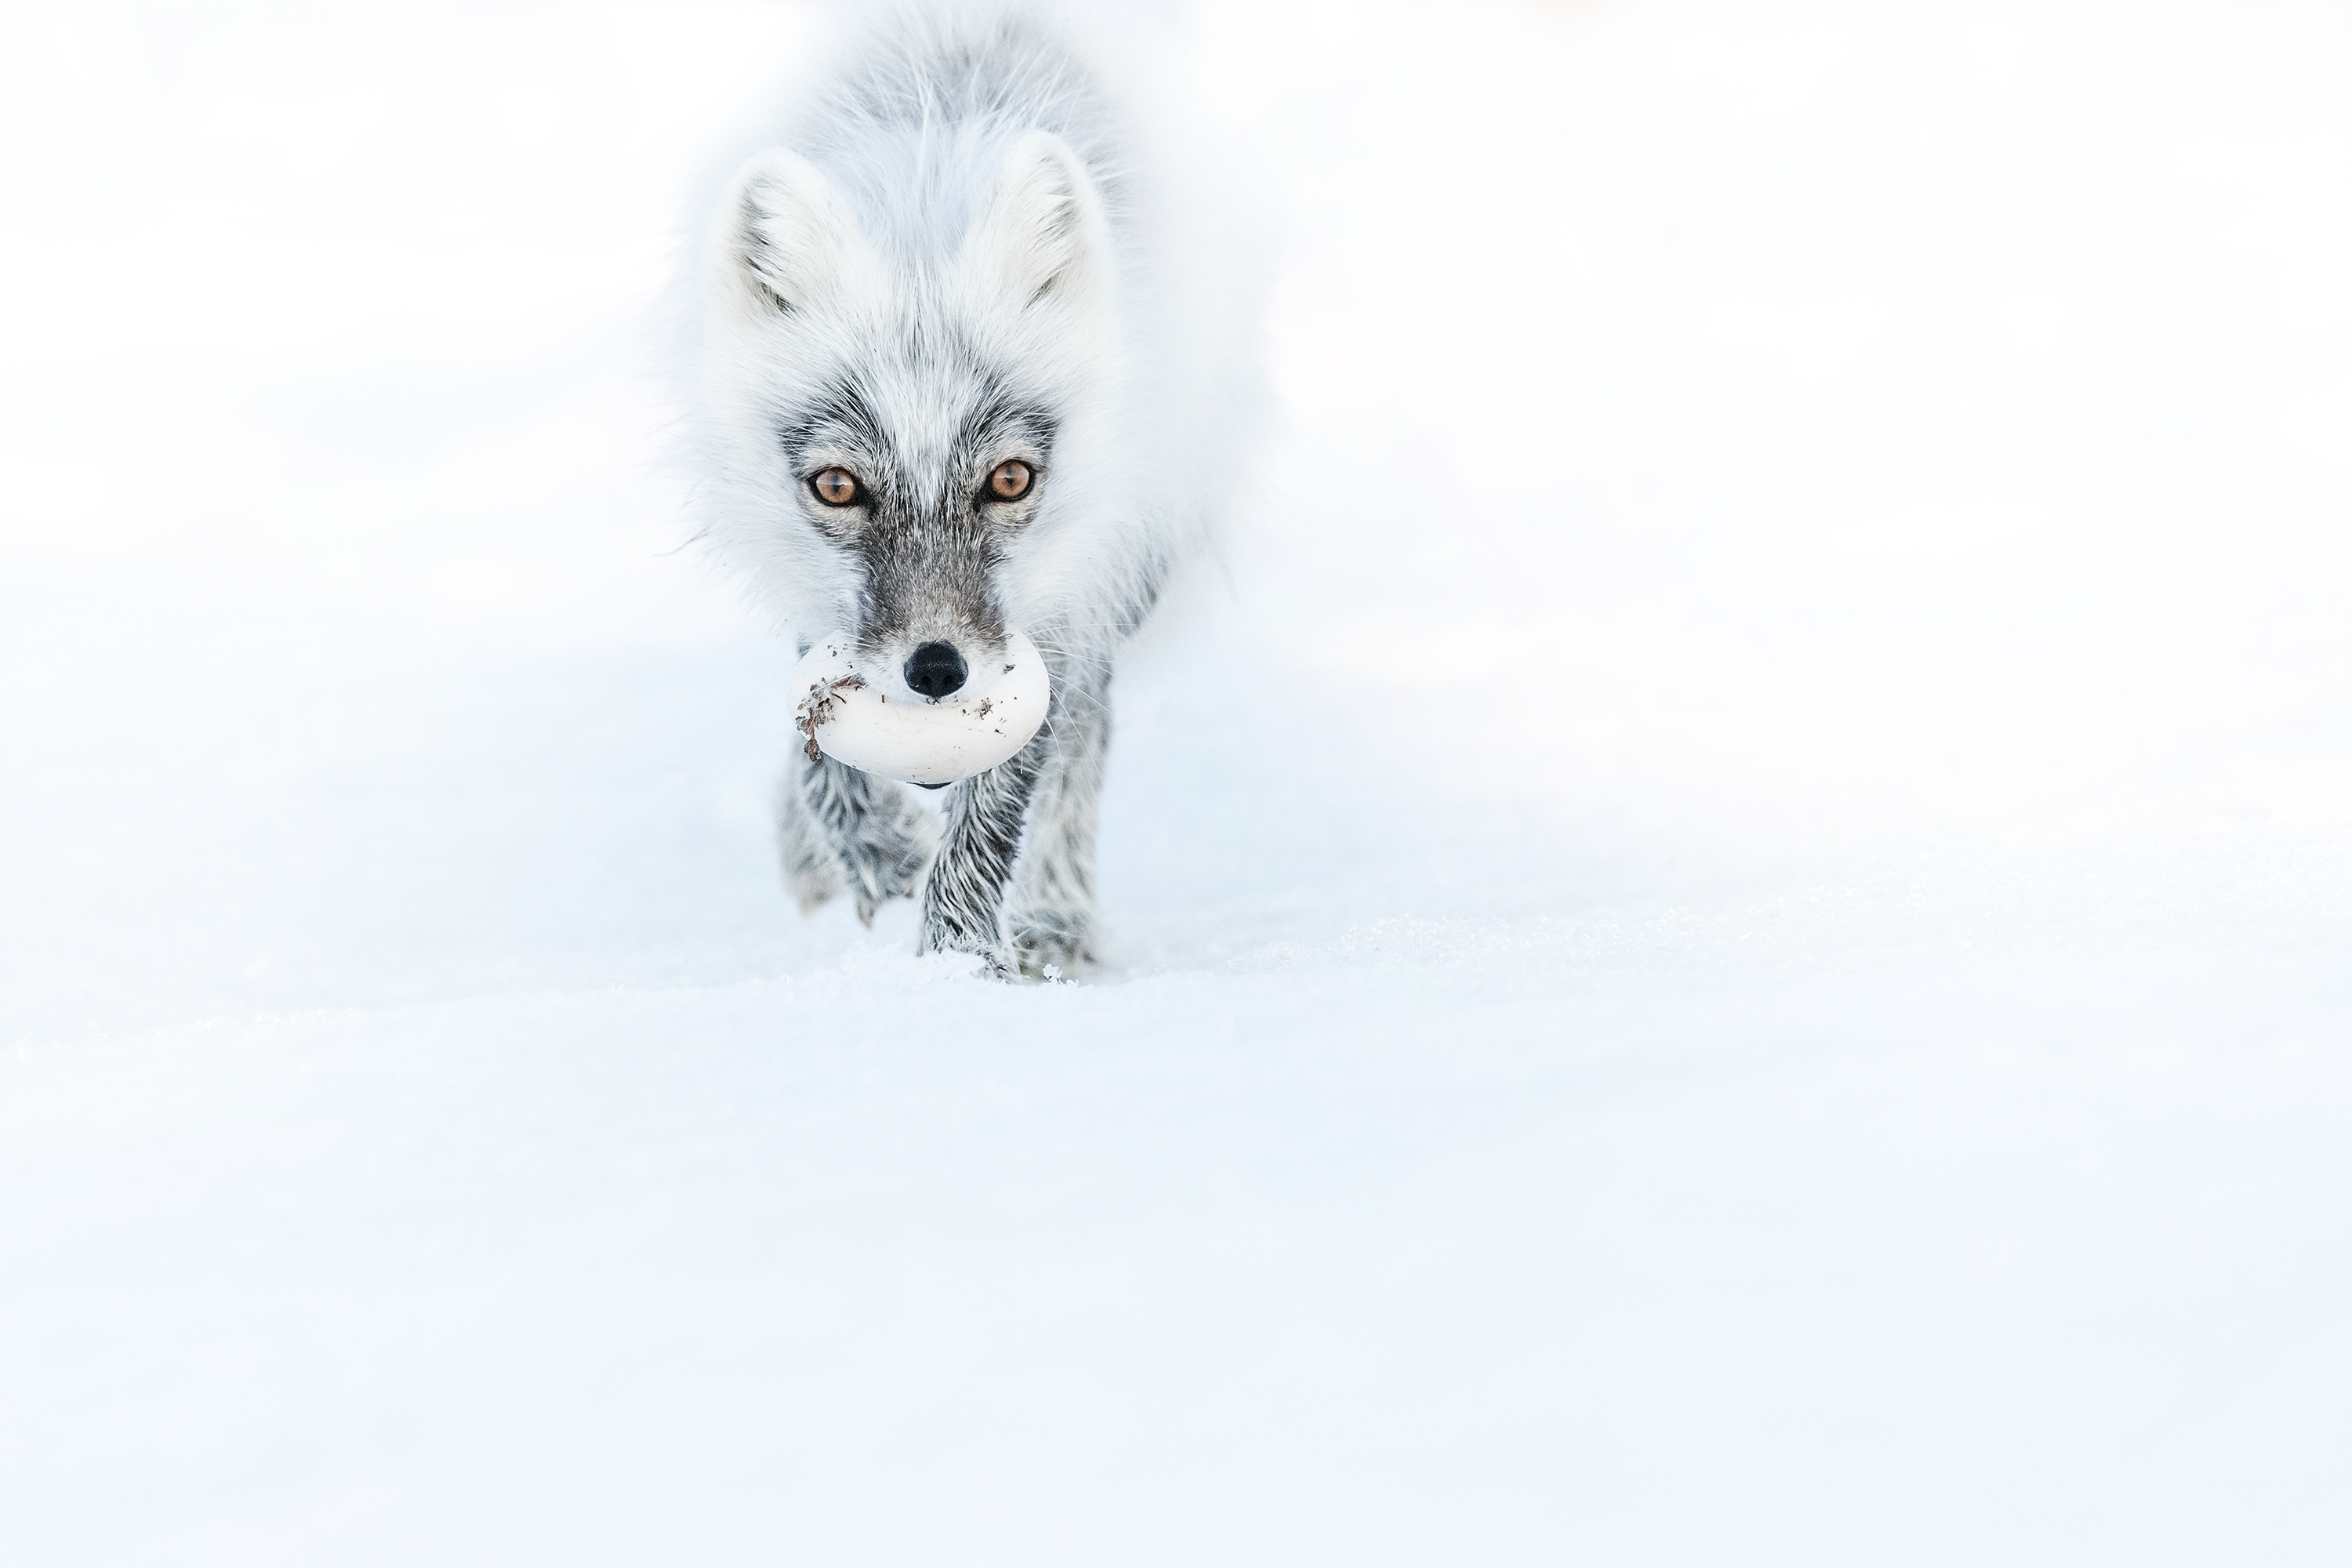 Arctic fox with an egg. - Arctic foxes are stealing from nests snow goose eggs.